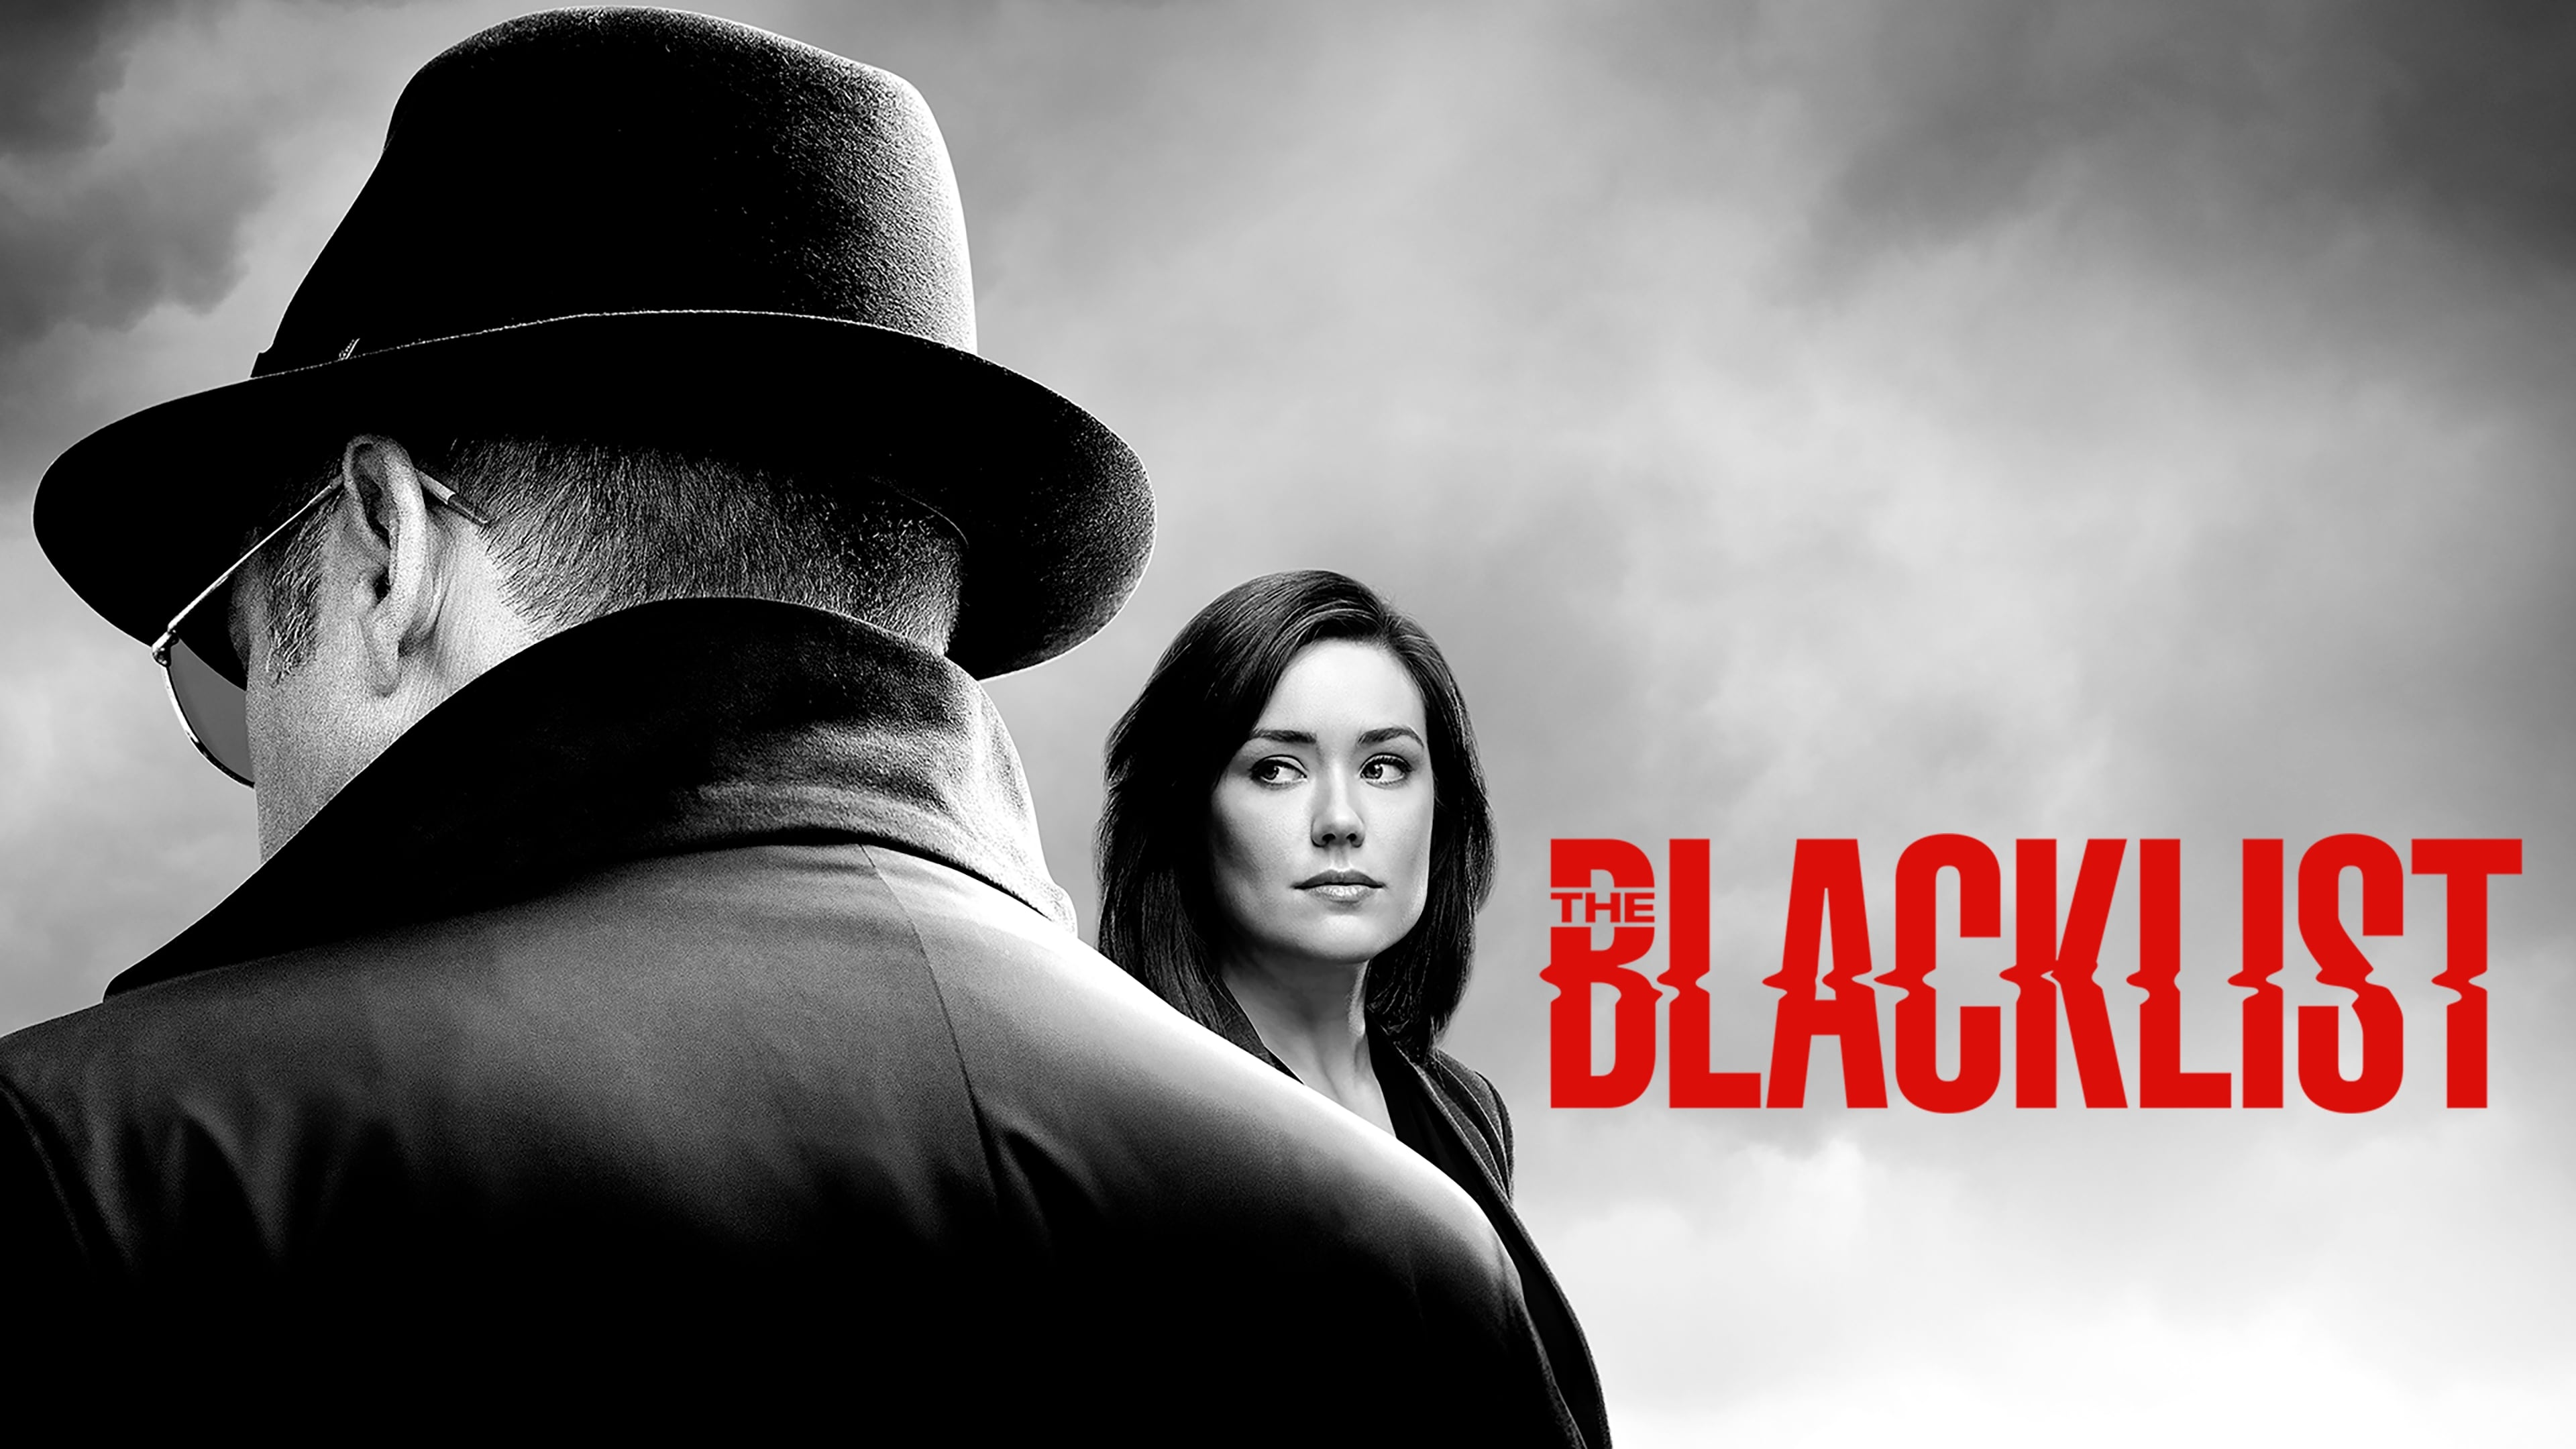 The Blacklist - Season 0 Episode 4 : A Look Ahead Season 3